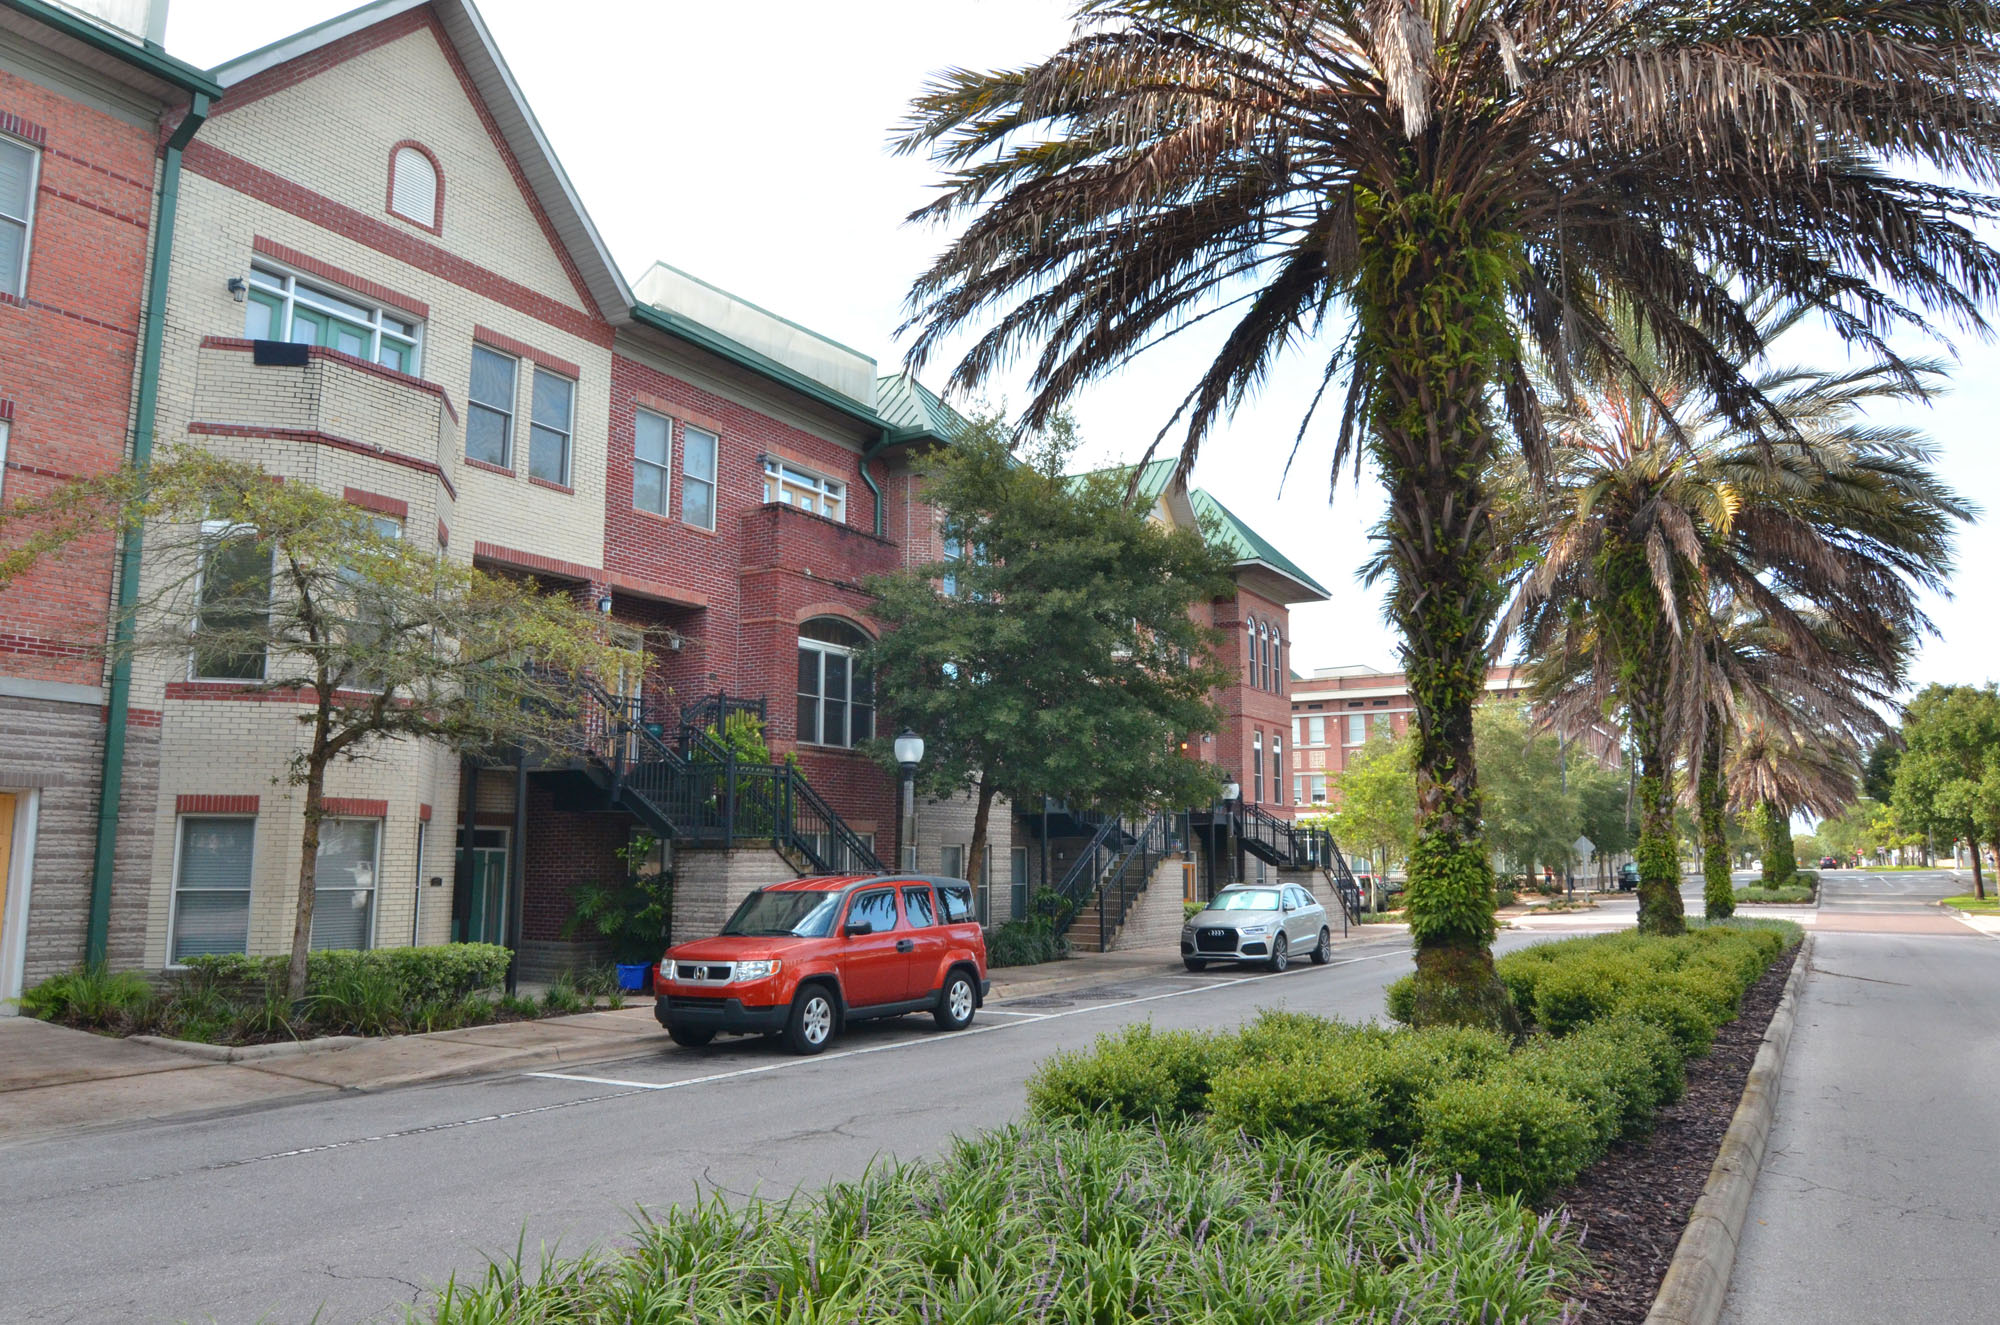 Sold: Luxury Condo in Duckpond and Downtown Gainesville